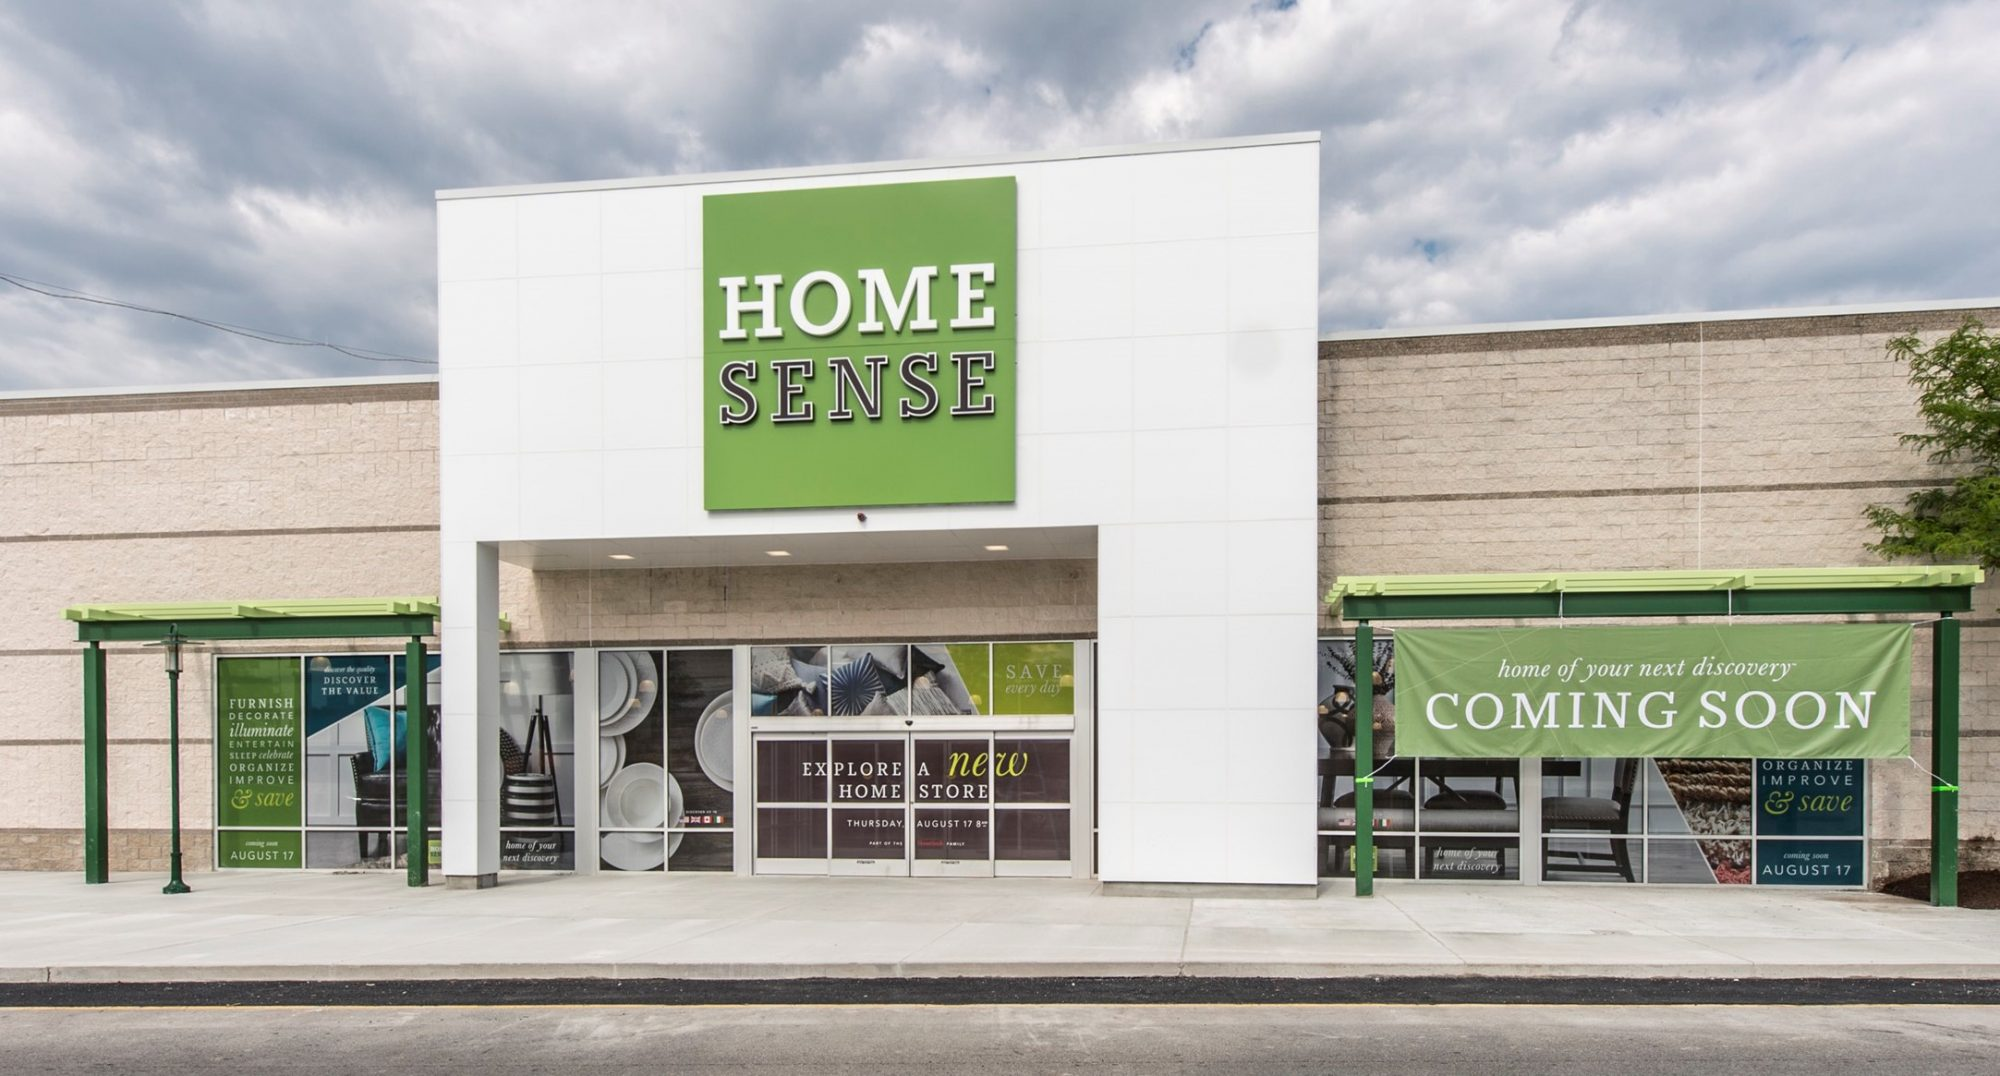 More Decor! A General Store! Here's Everything You Can Expect from HomeGoods' Spinoff Chain, Homesense